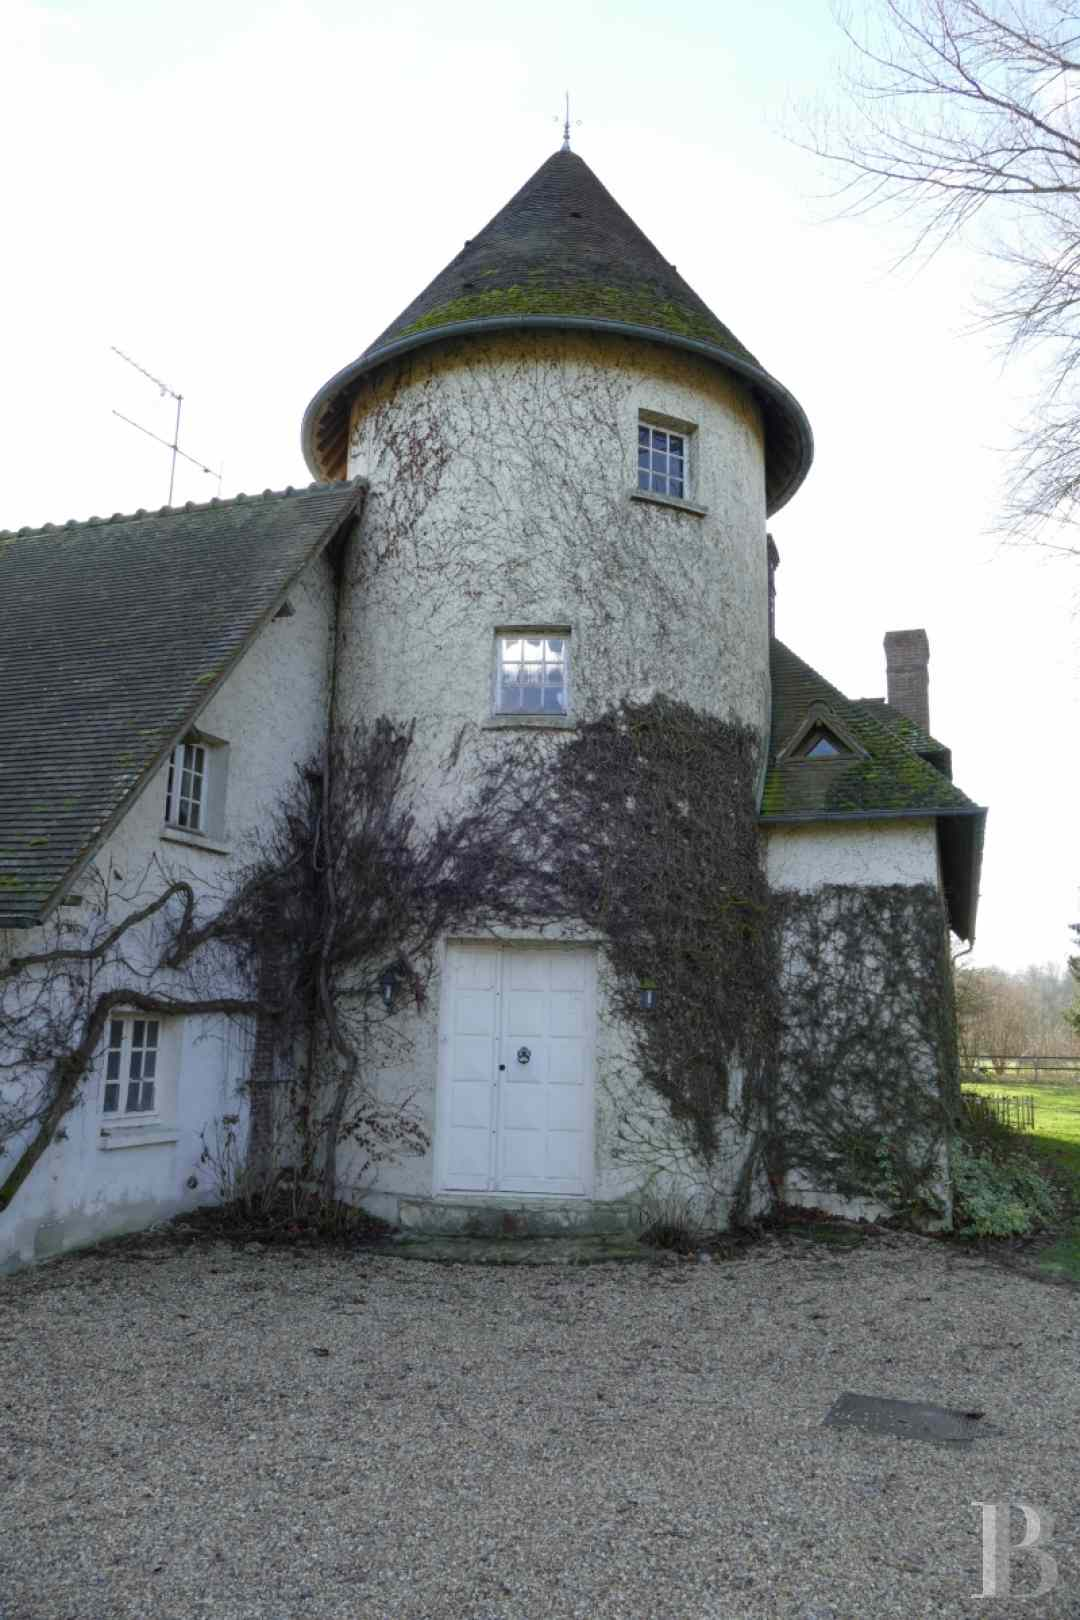 character properties France upper normandy character houses - 11 zoom